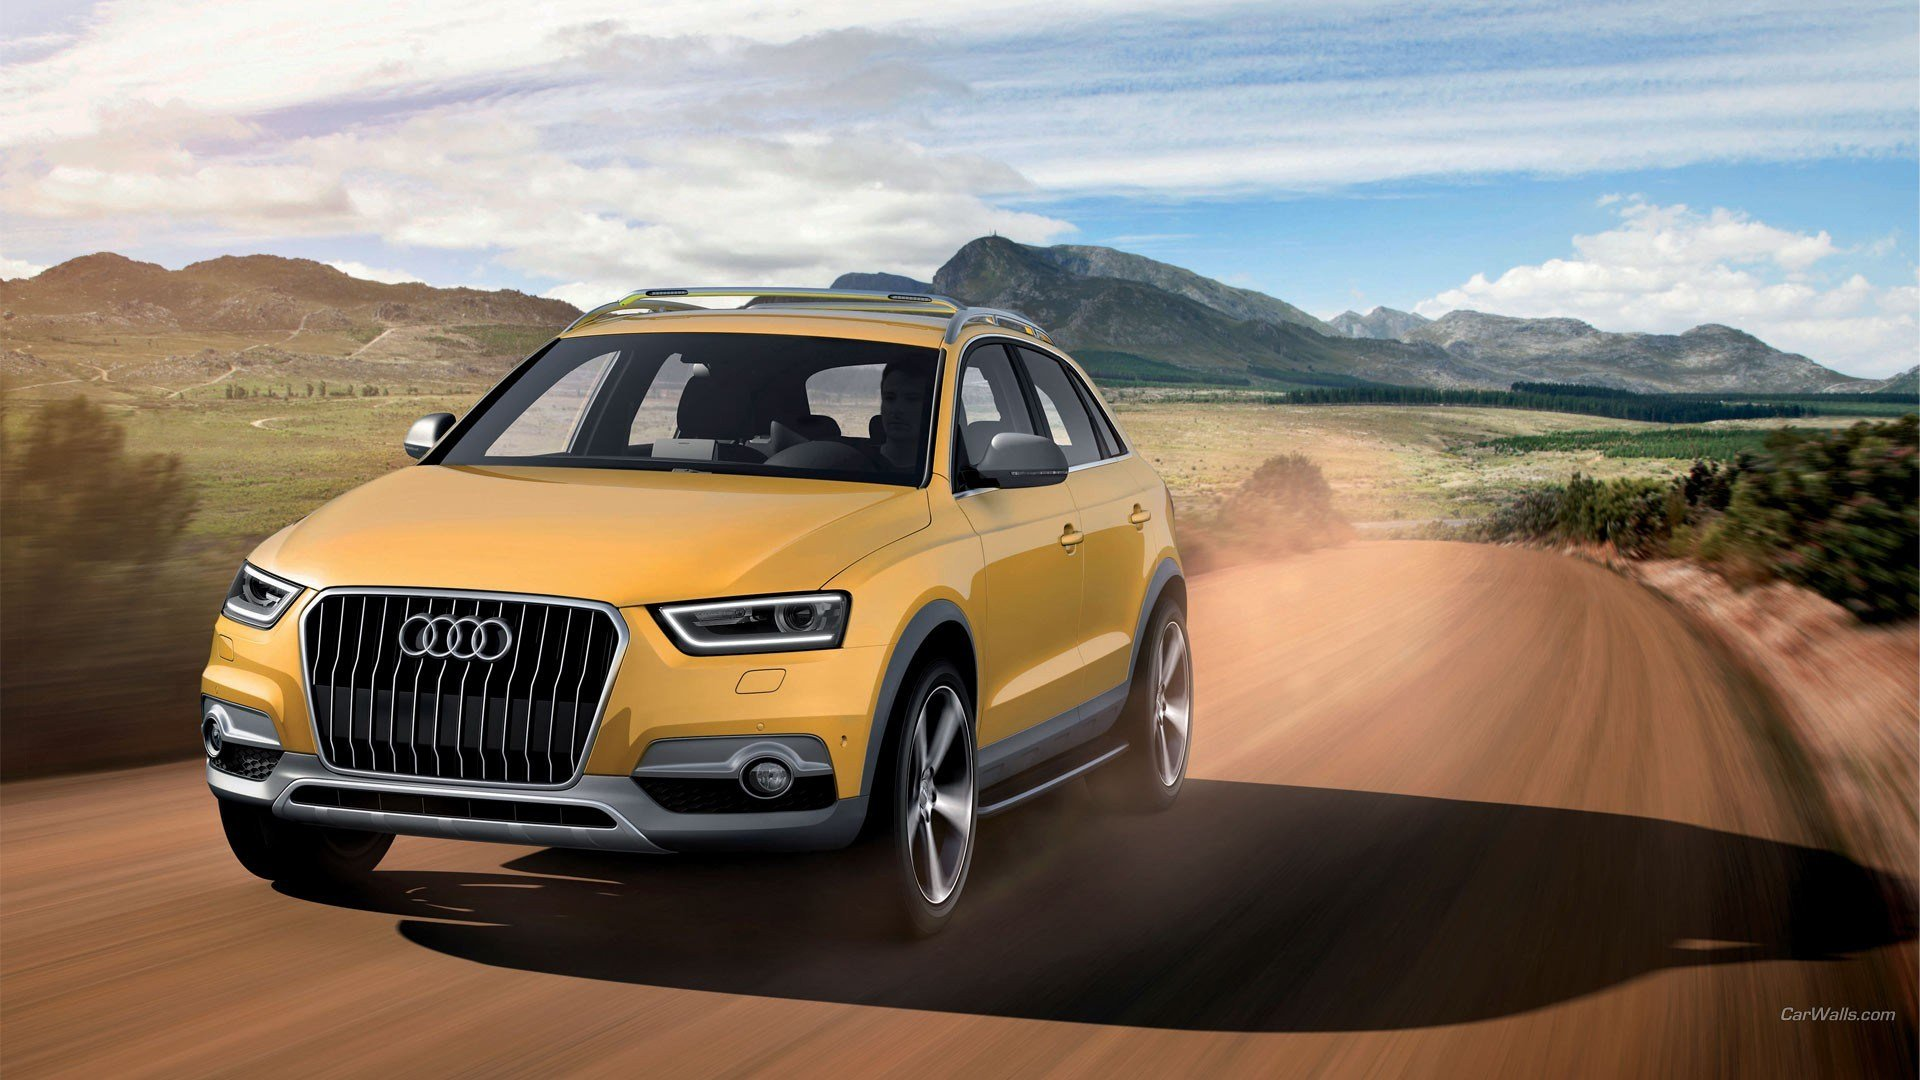 Latest Audi Q3 Wallpapers Hd Desktop And Mobile Backgrounds Free Download